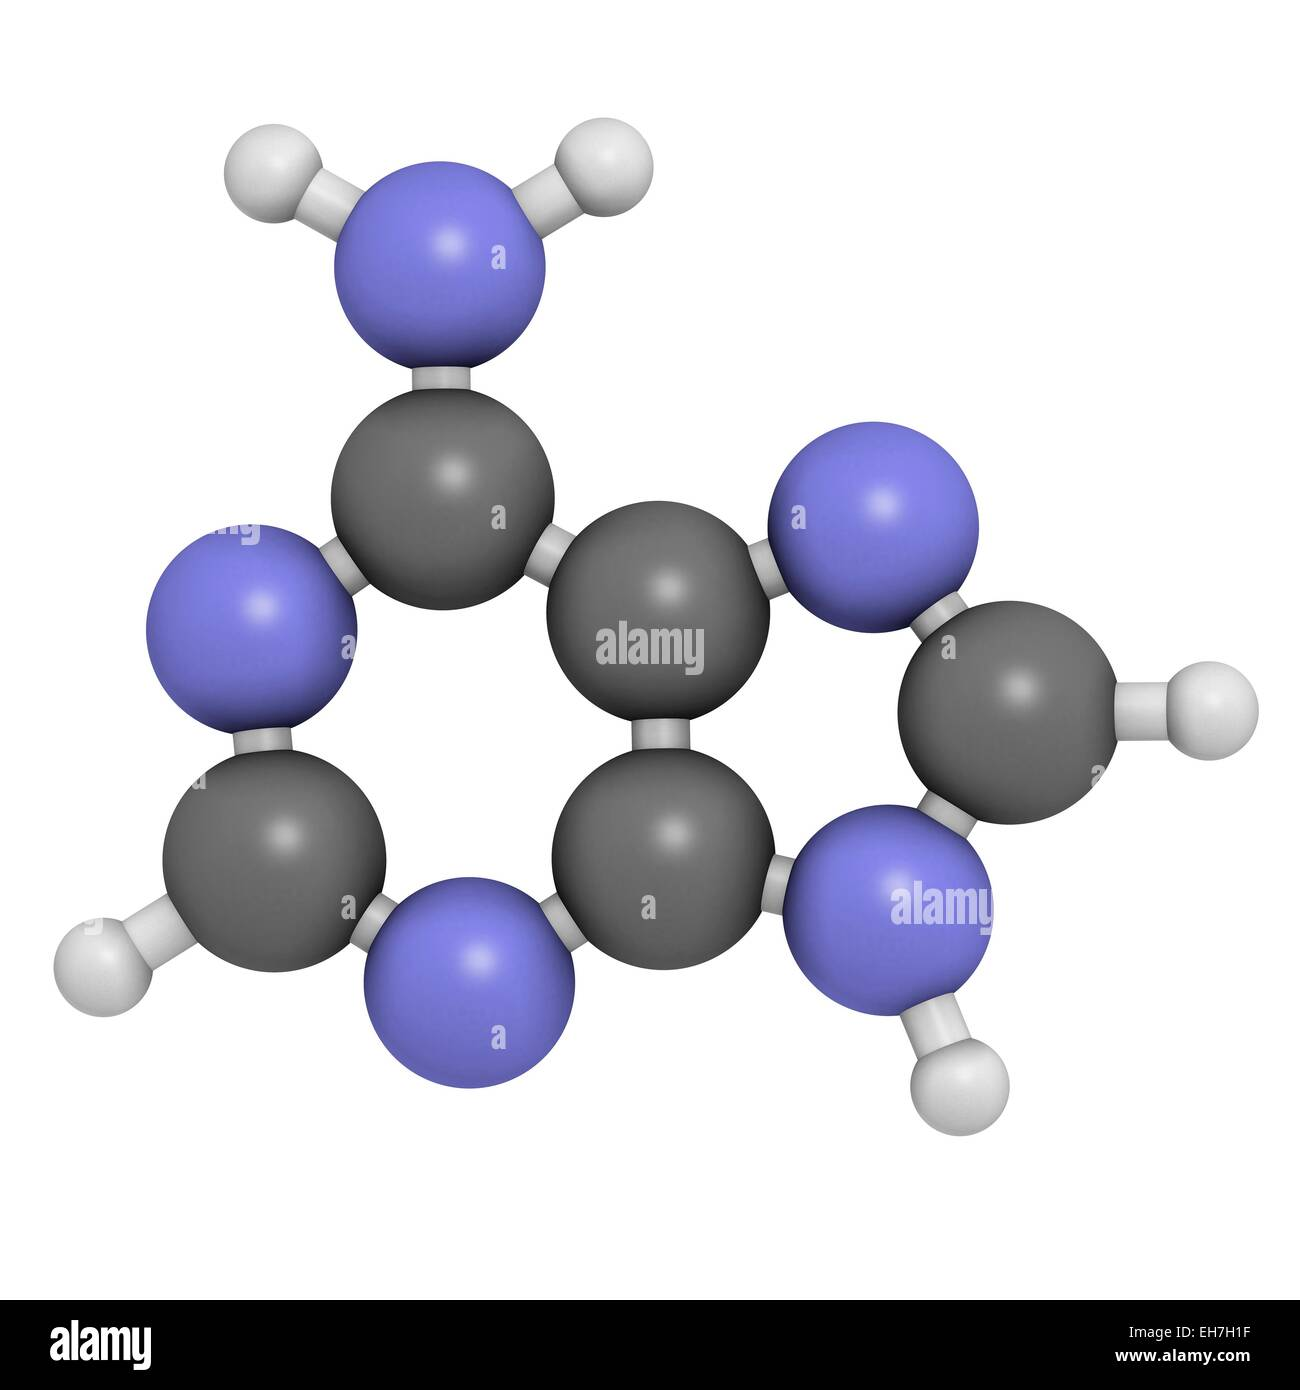 Adenine purine nucleobase molecule Stock Photo